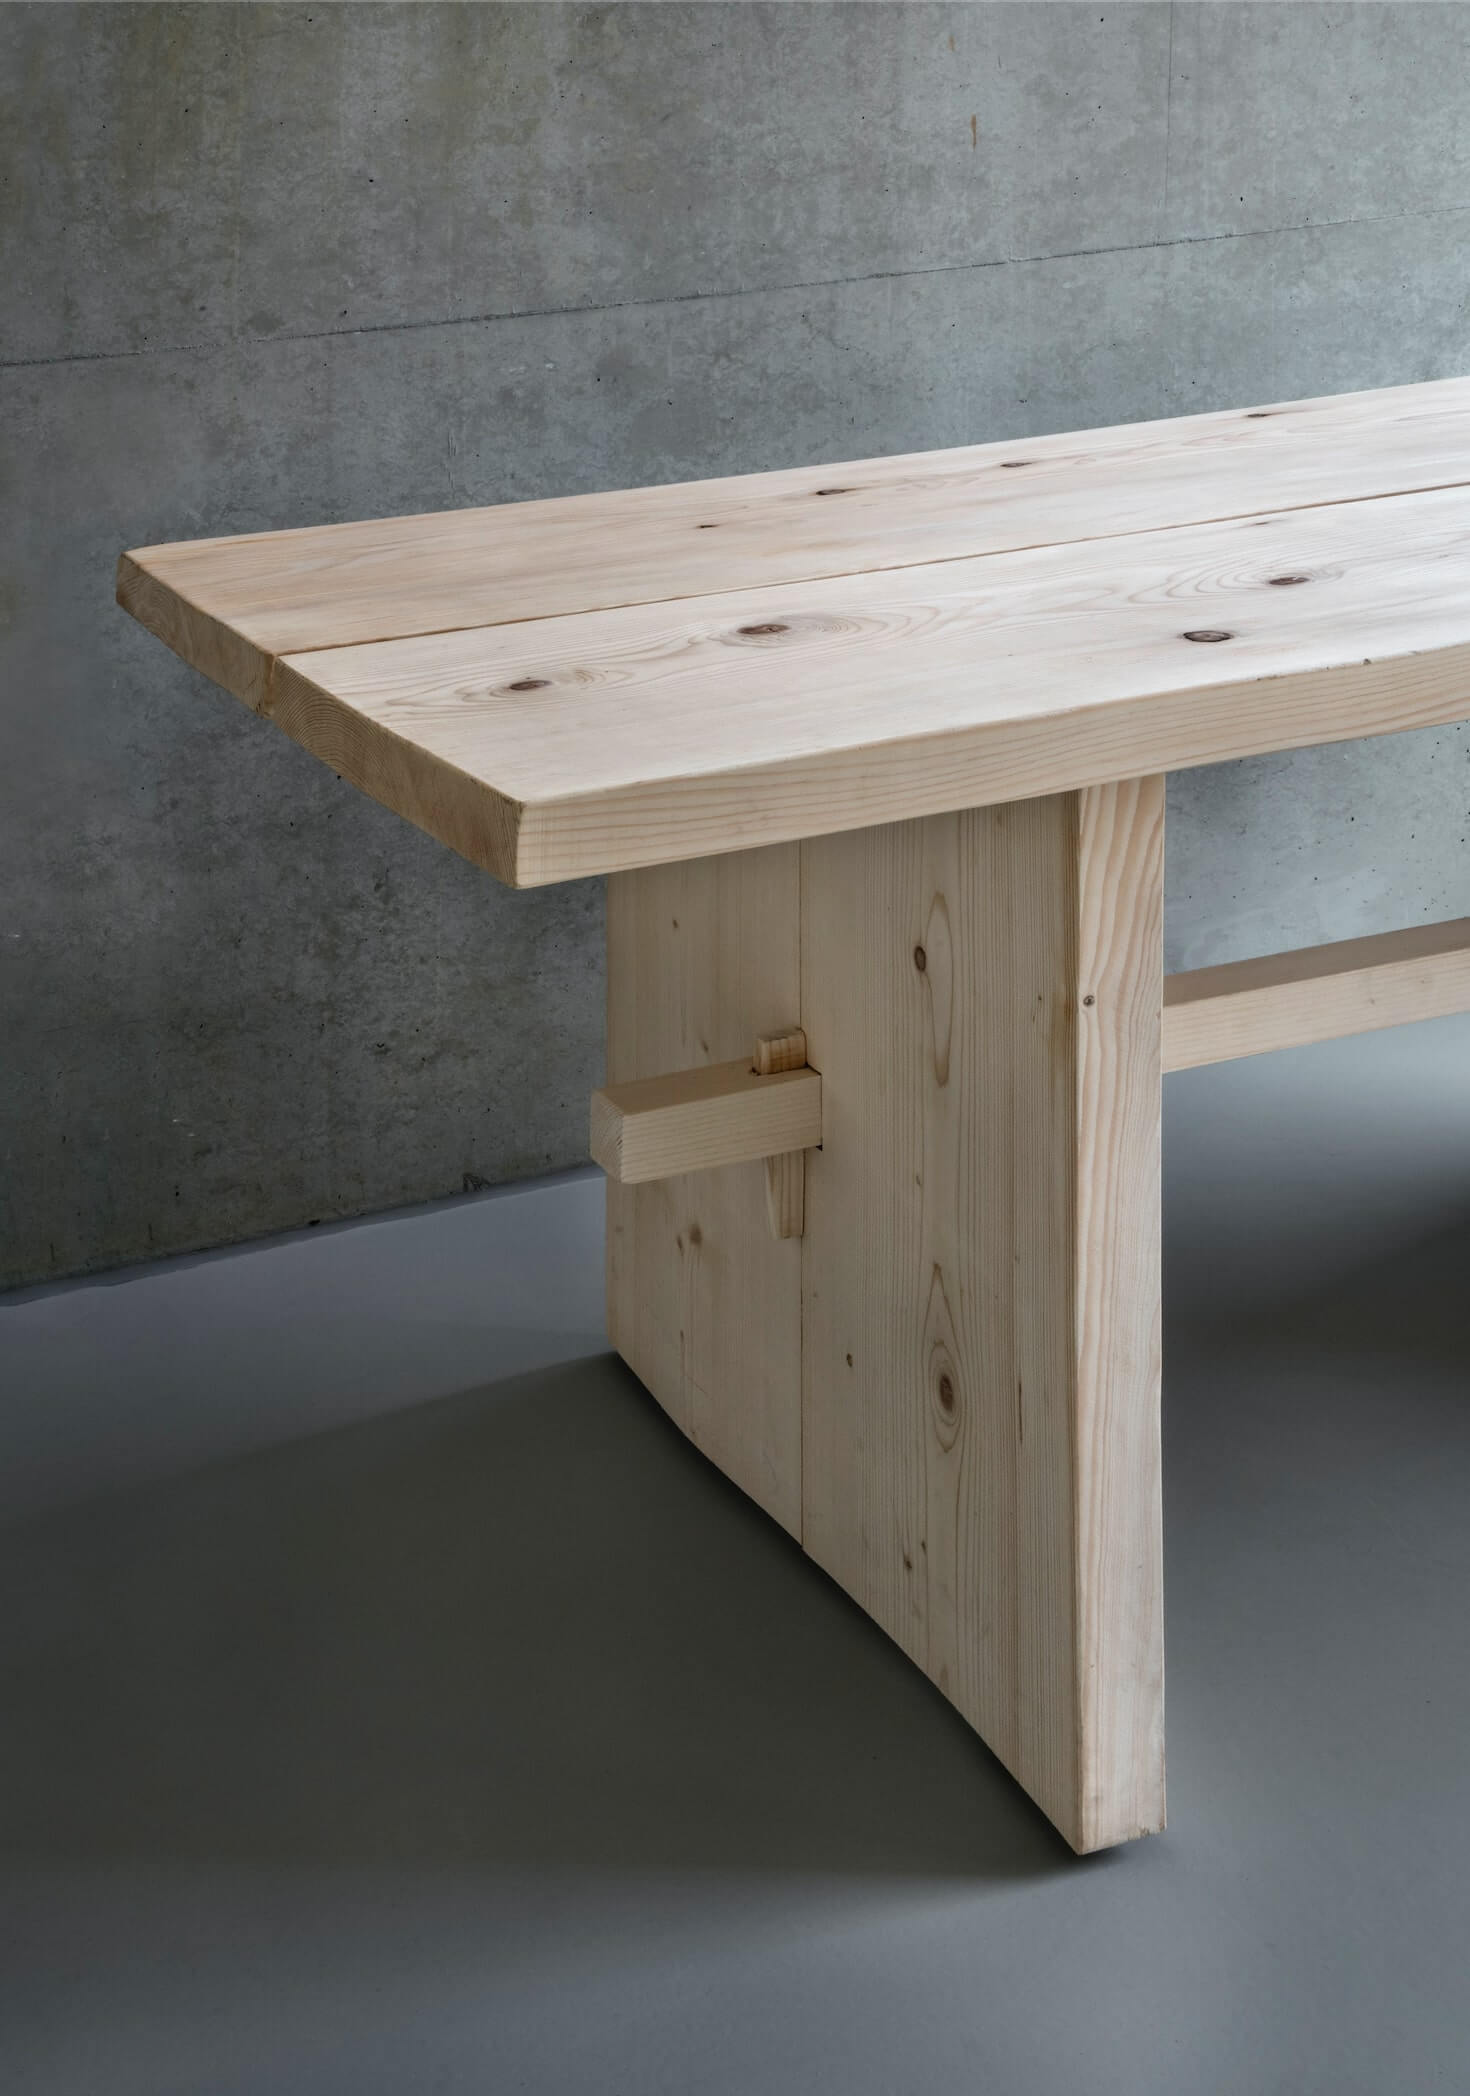 the legs of the design table are made with wood